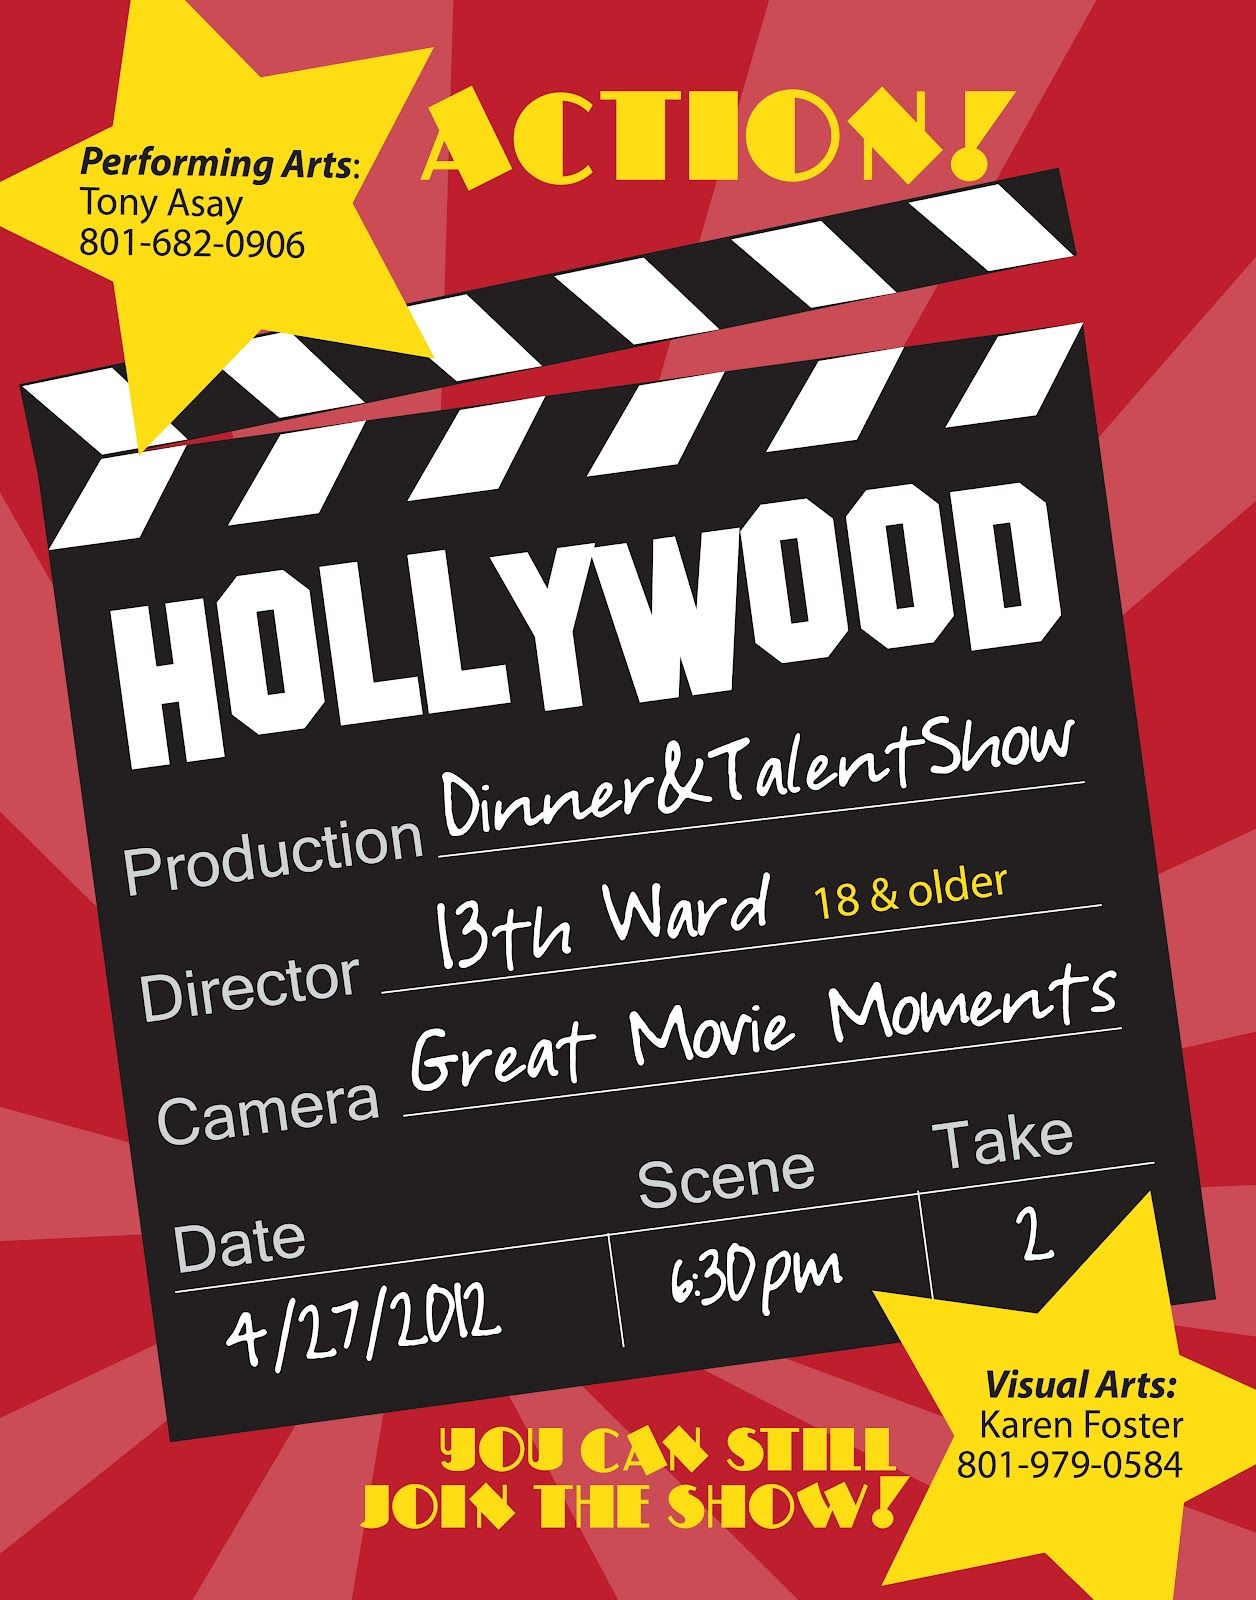 Hillmark Design  Hollywood Dinner  Talent Show Flyer  Hillmark